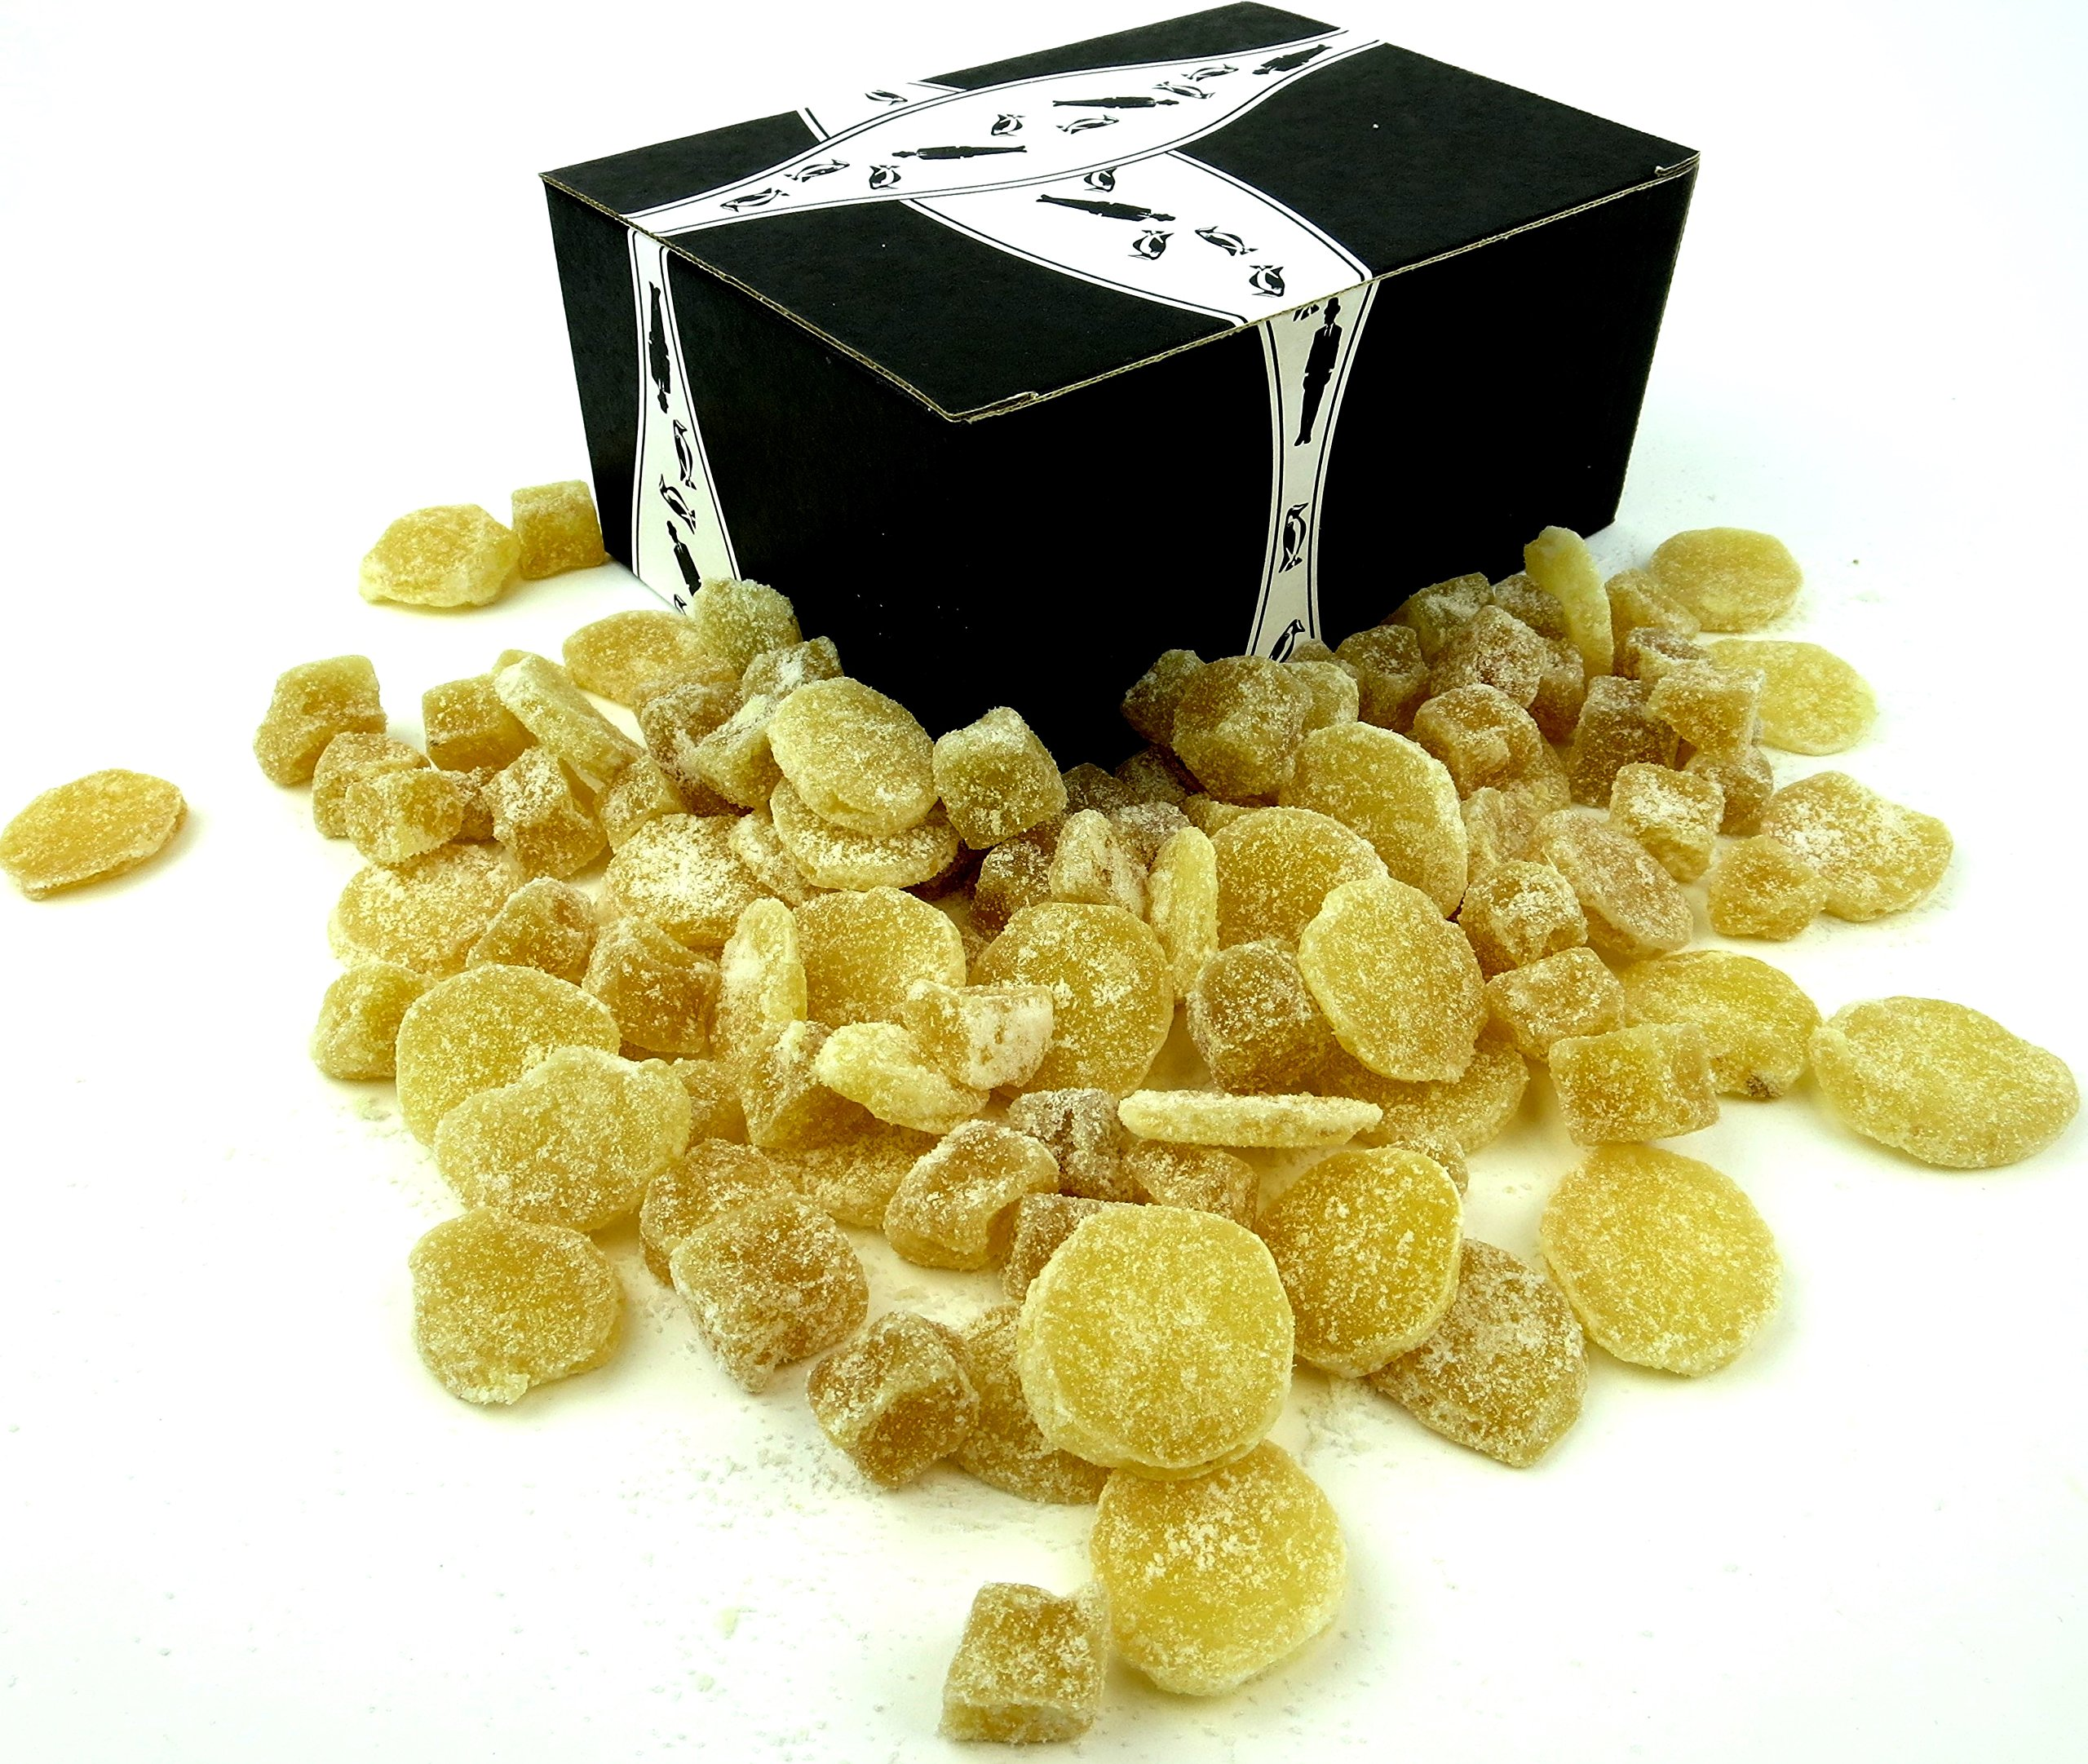 The Ginger People All Natural Crystallized Ginger Select Variety: One 8 oz Bag Each of Dice and Slices in a Gift Box